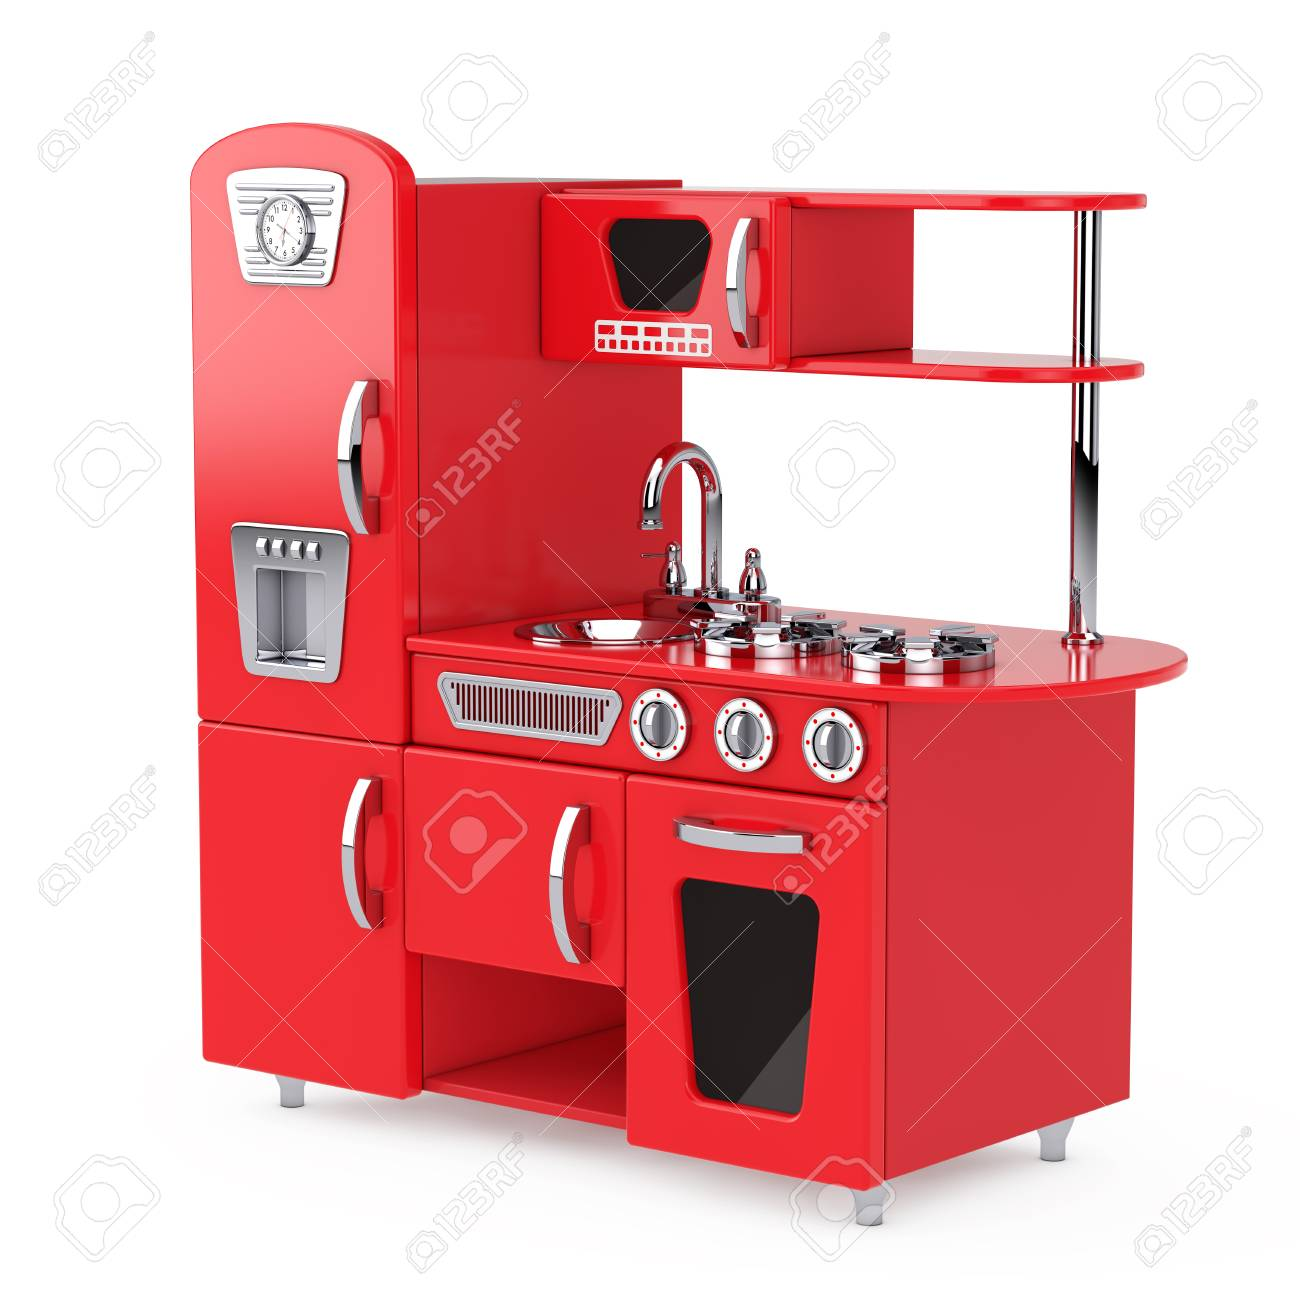 Red Vintage Toy Kitchen on a white background. 3d Rendering